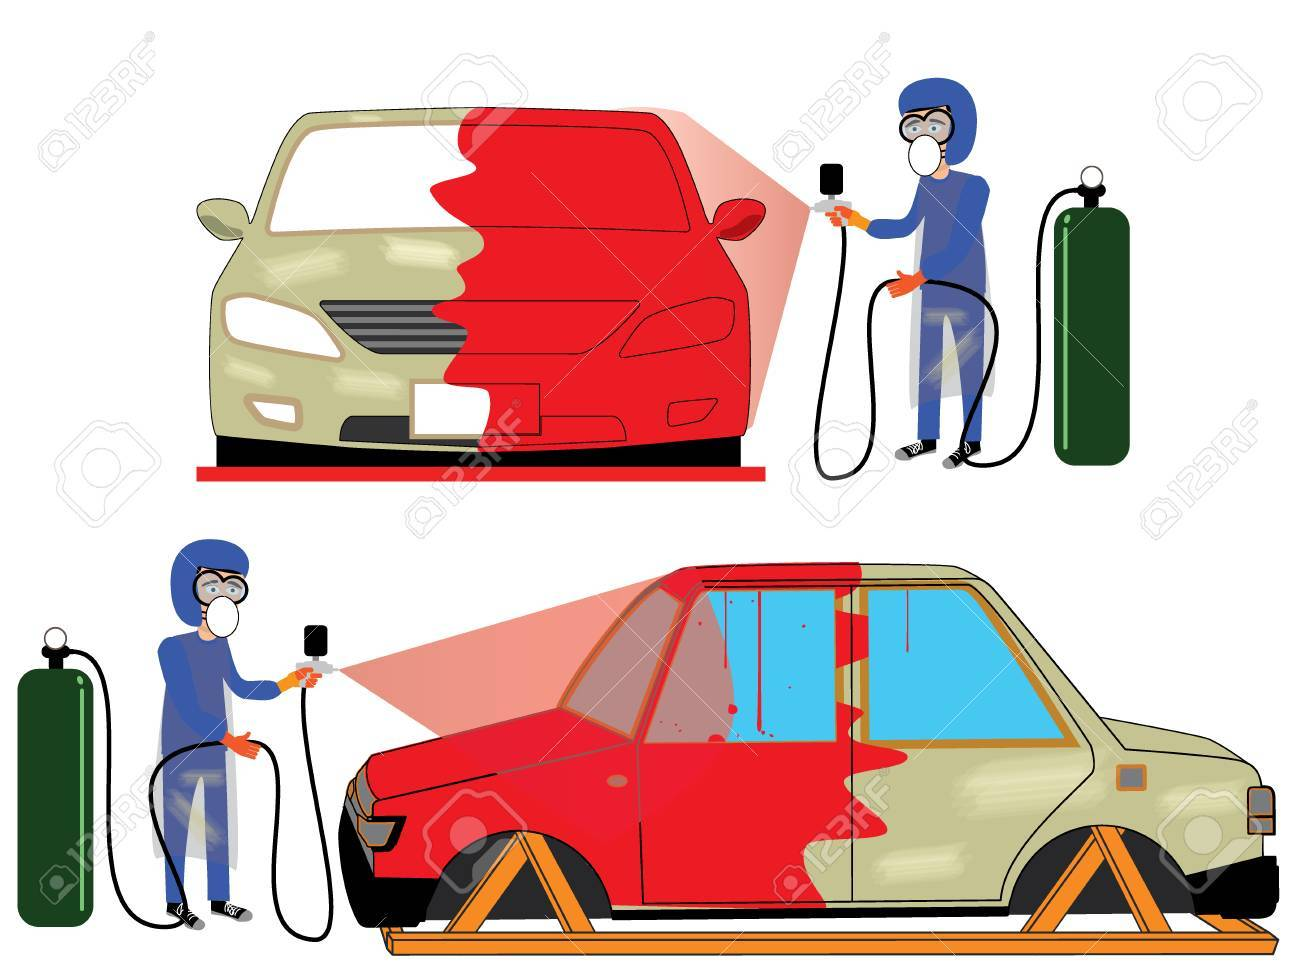 spray painting auto mobile body at car collision repair shop.